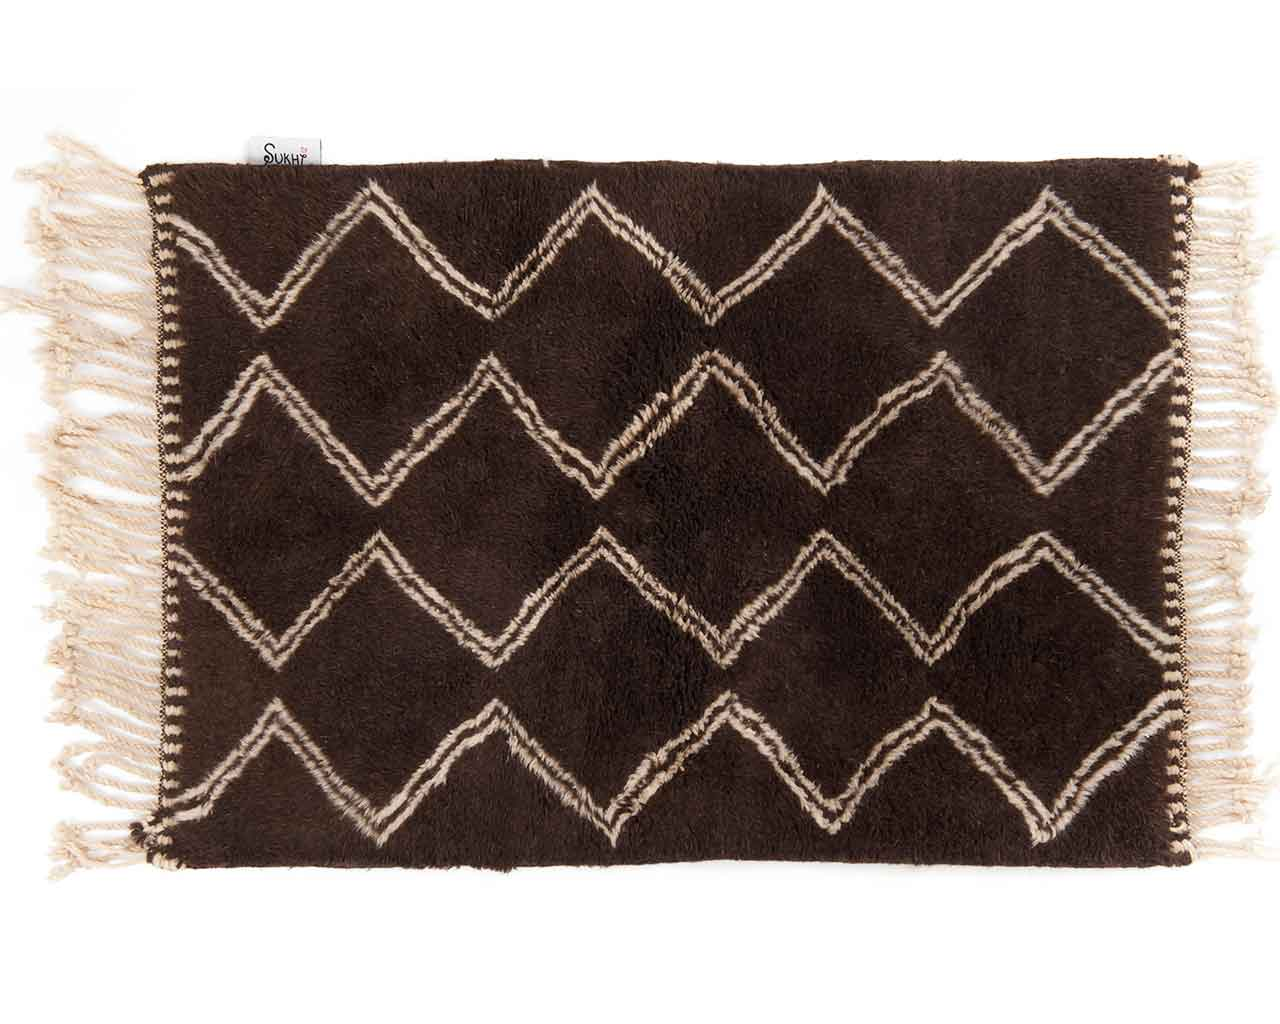 buy online beni ourain carpets in brown colors 1